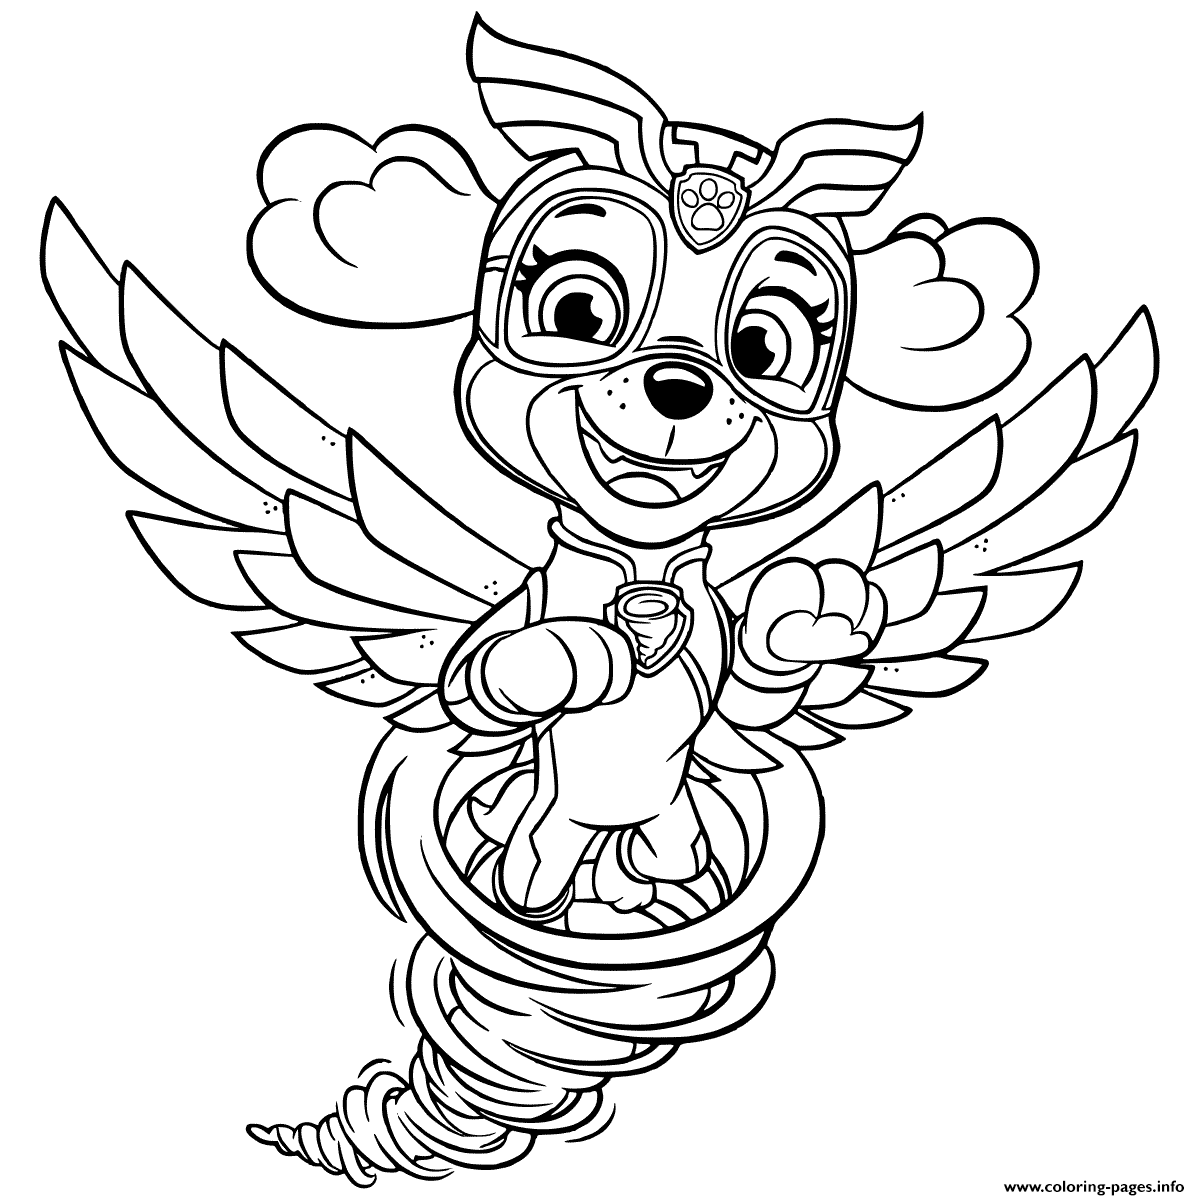 Mighty Pups Coloring Pages - Coloring Home